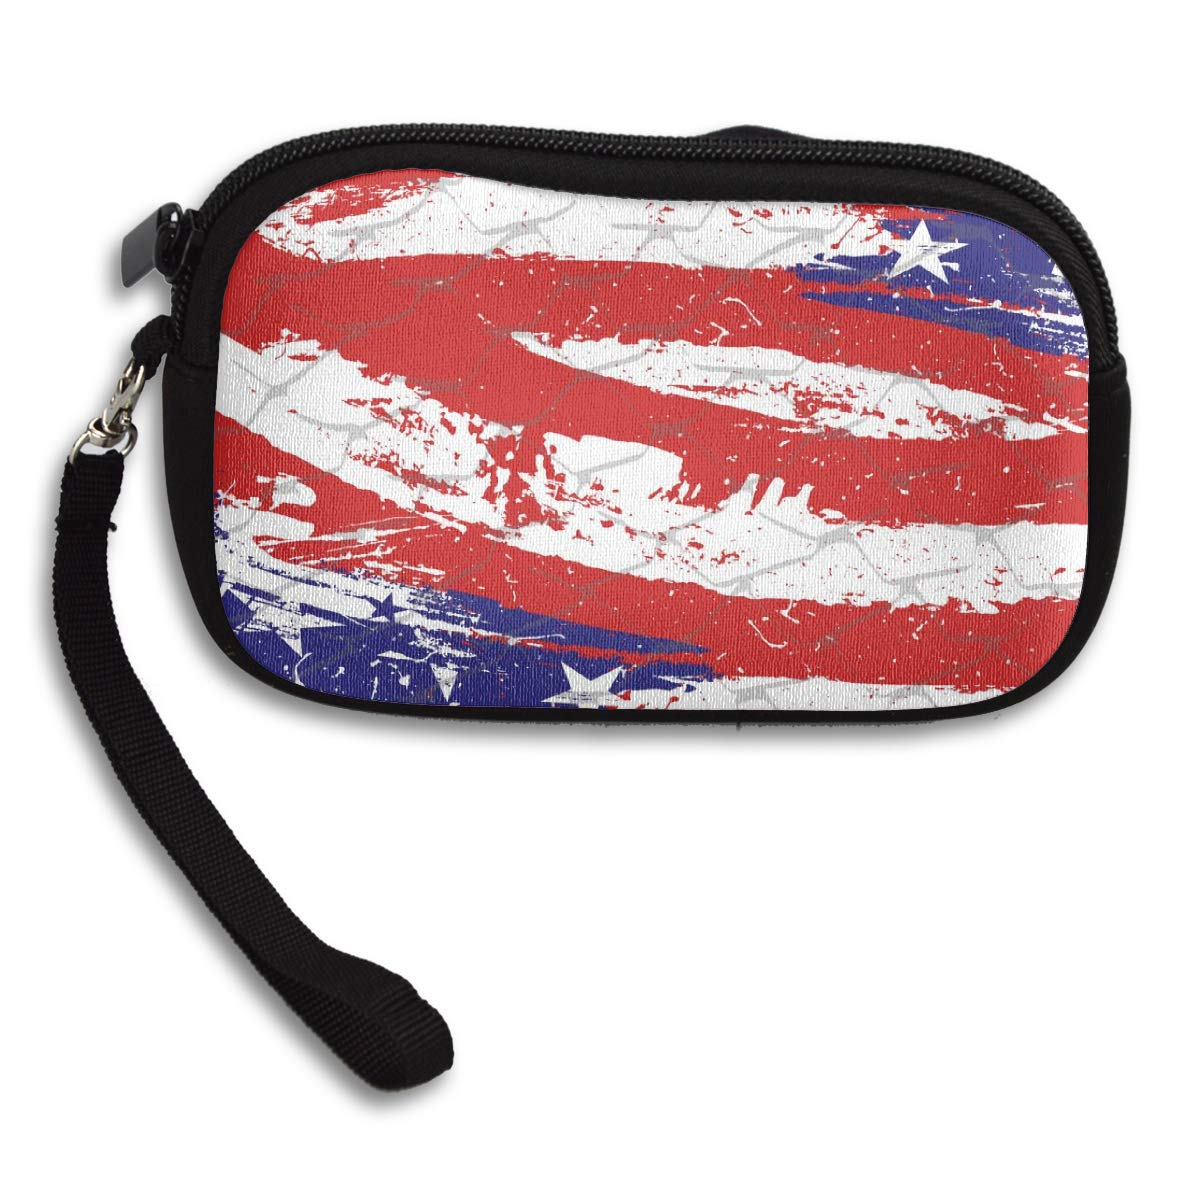 Coin Purse Paint America Flag wallet change Purse with Zipper Wallet Coin Pouch Mini Size Cash Phone Holder